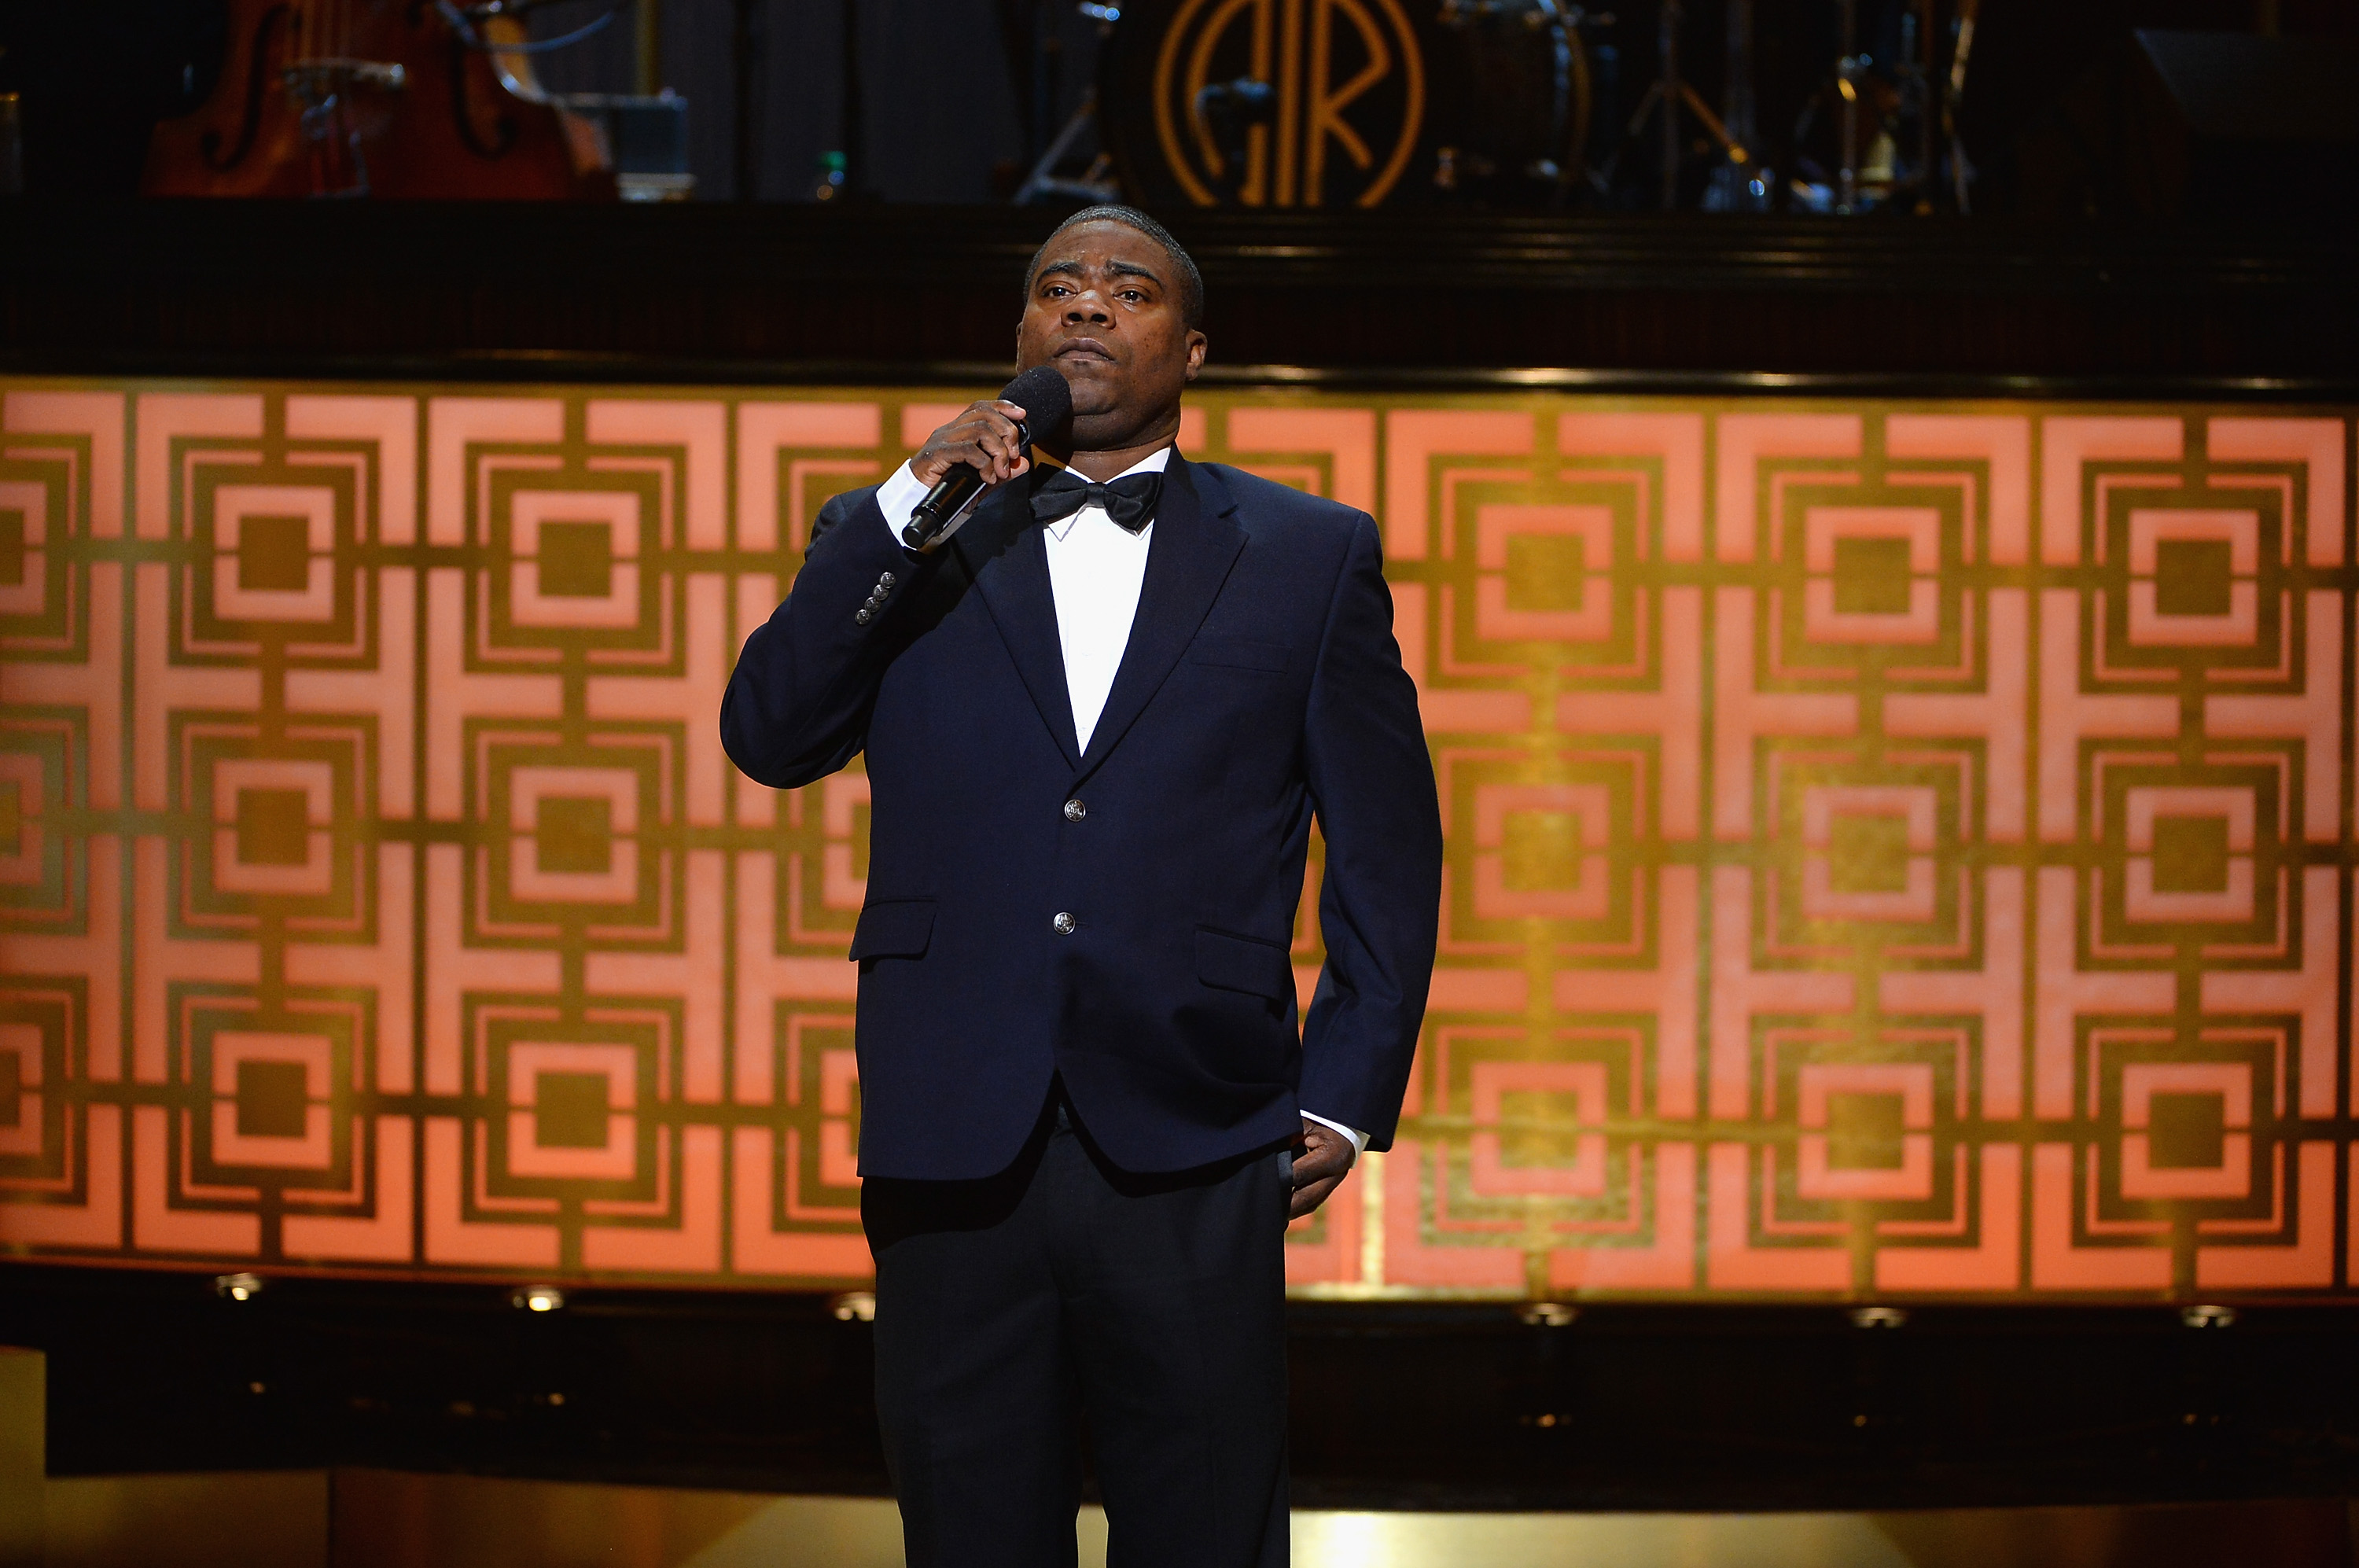 Revealed tracy morgan to return to tv after tragic auto accident